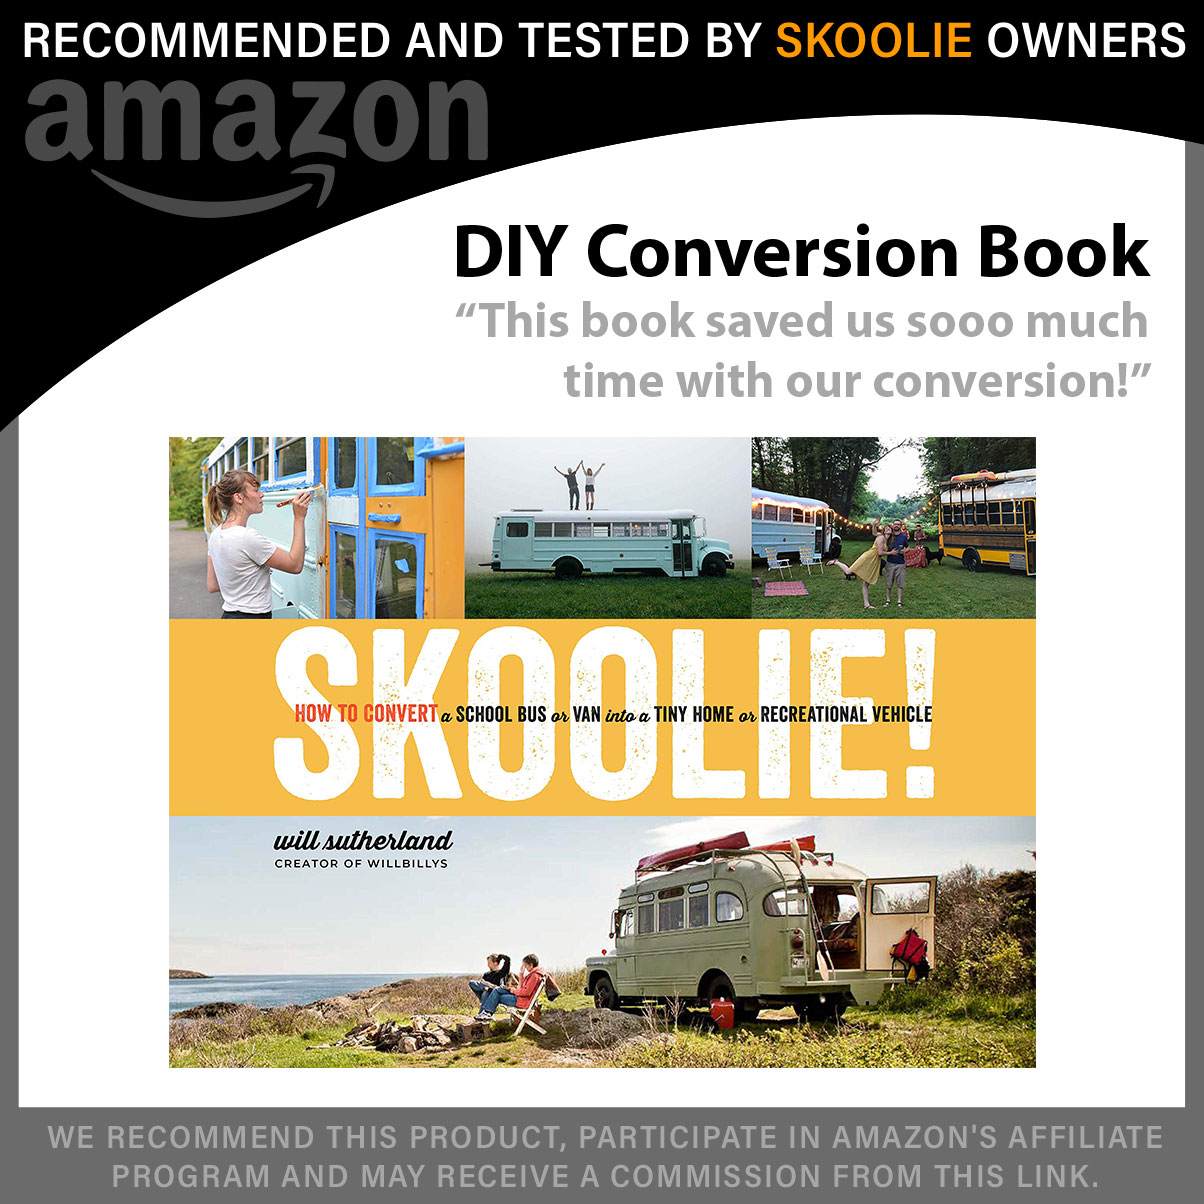 Skoolie - DIY Conversion Book